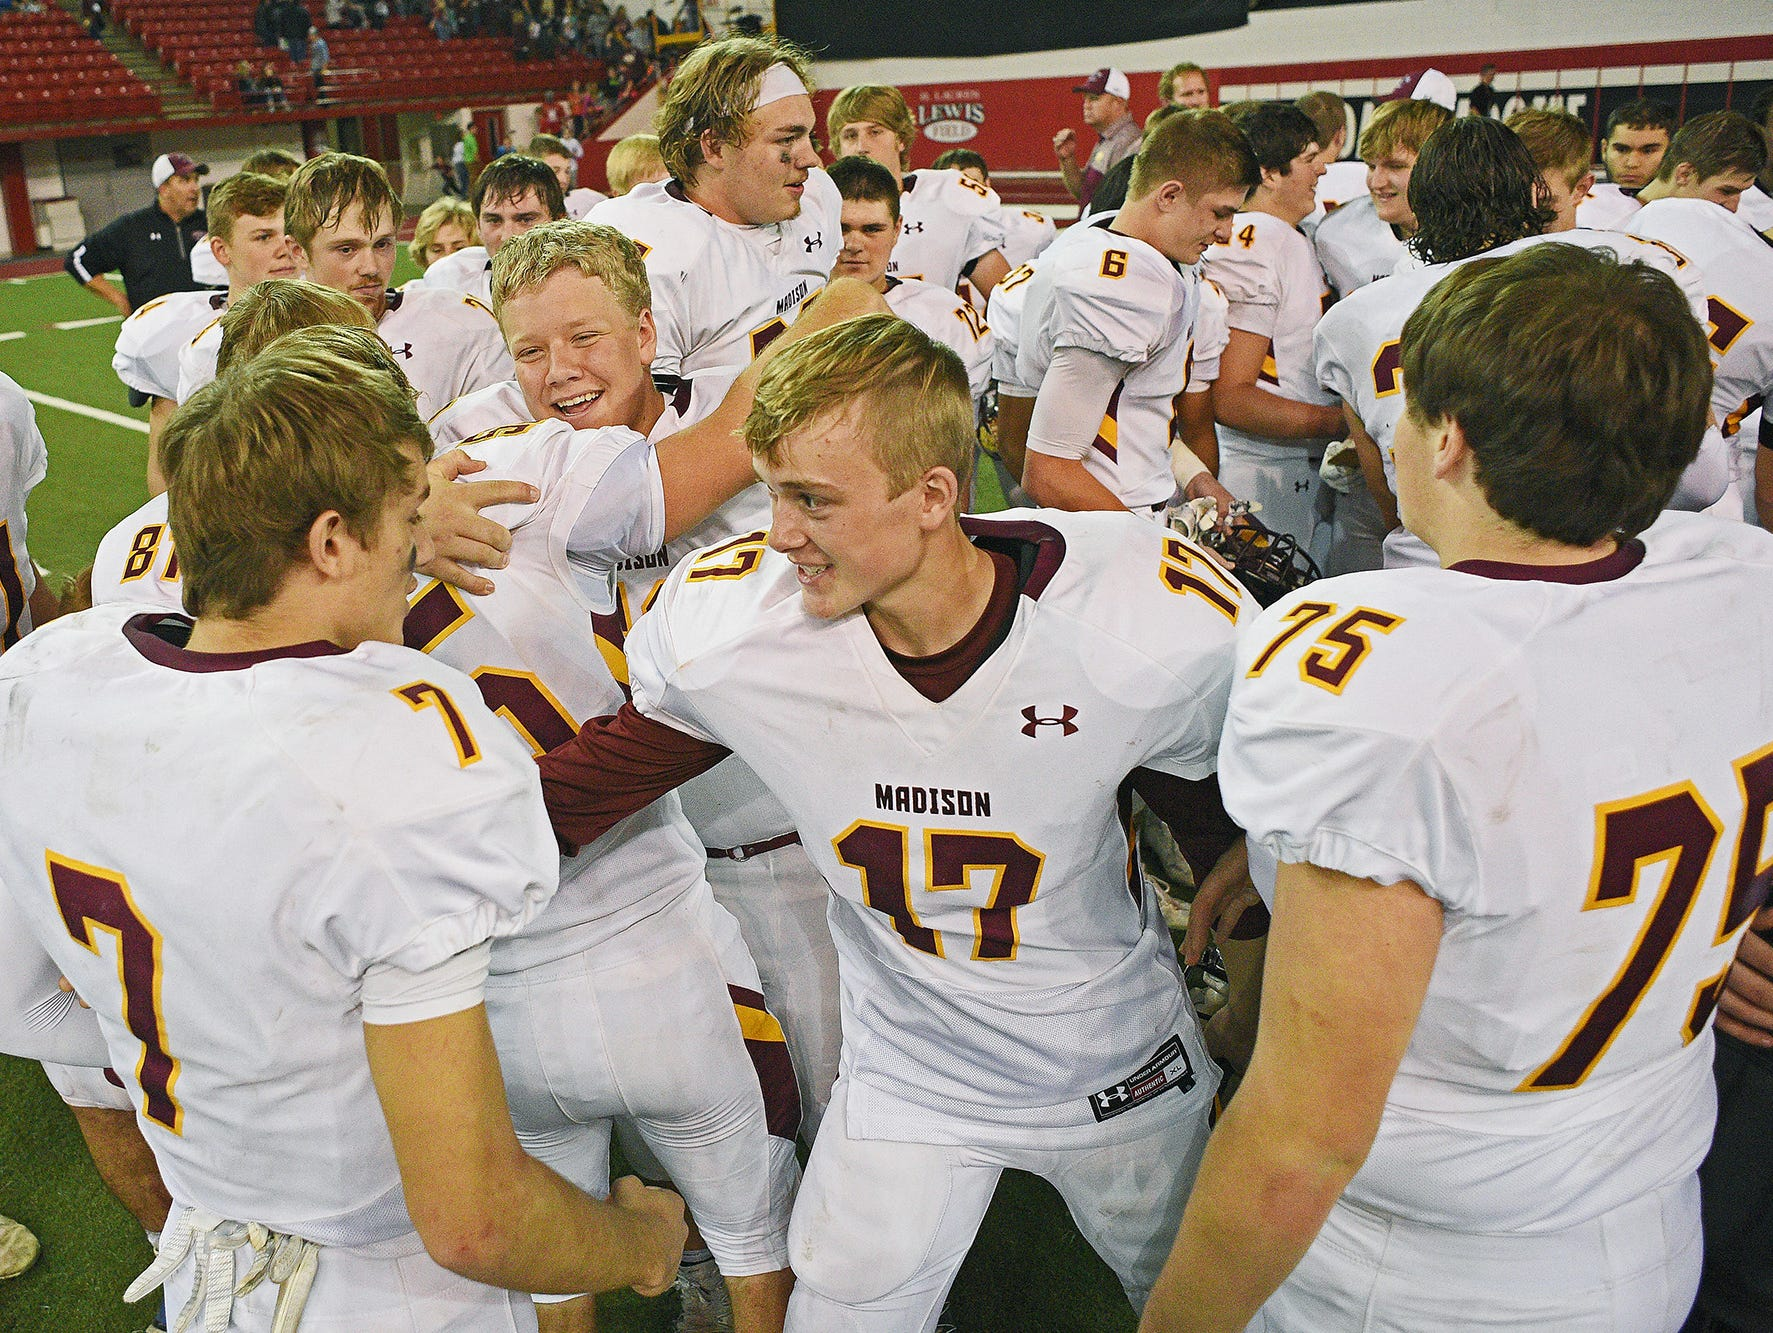 Madison players, their fans and their families celebrate their 39-0 win over Tea Area in the 2016 South Dakota State Class 11A Football Championship game Saturday, Nov. 12, 2016, at the DakotaDome on the University of South Dakota campus in Vermillion, S.D.